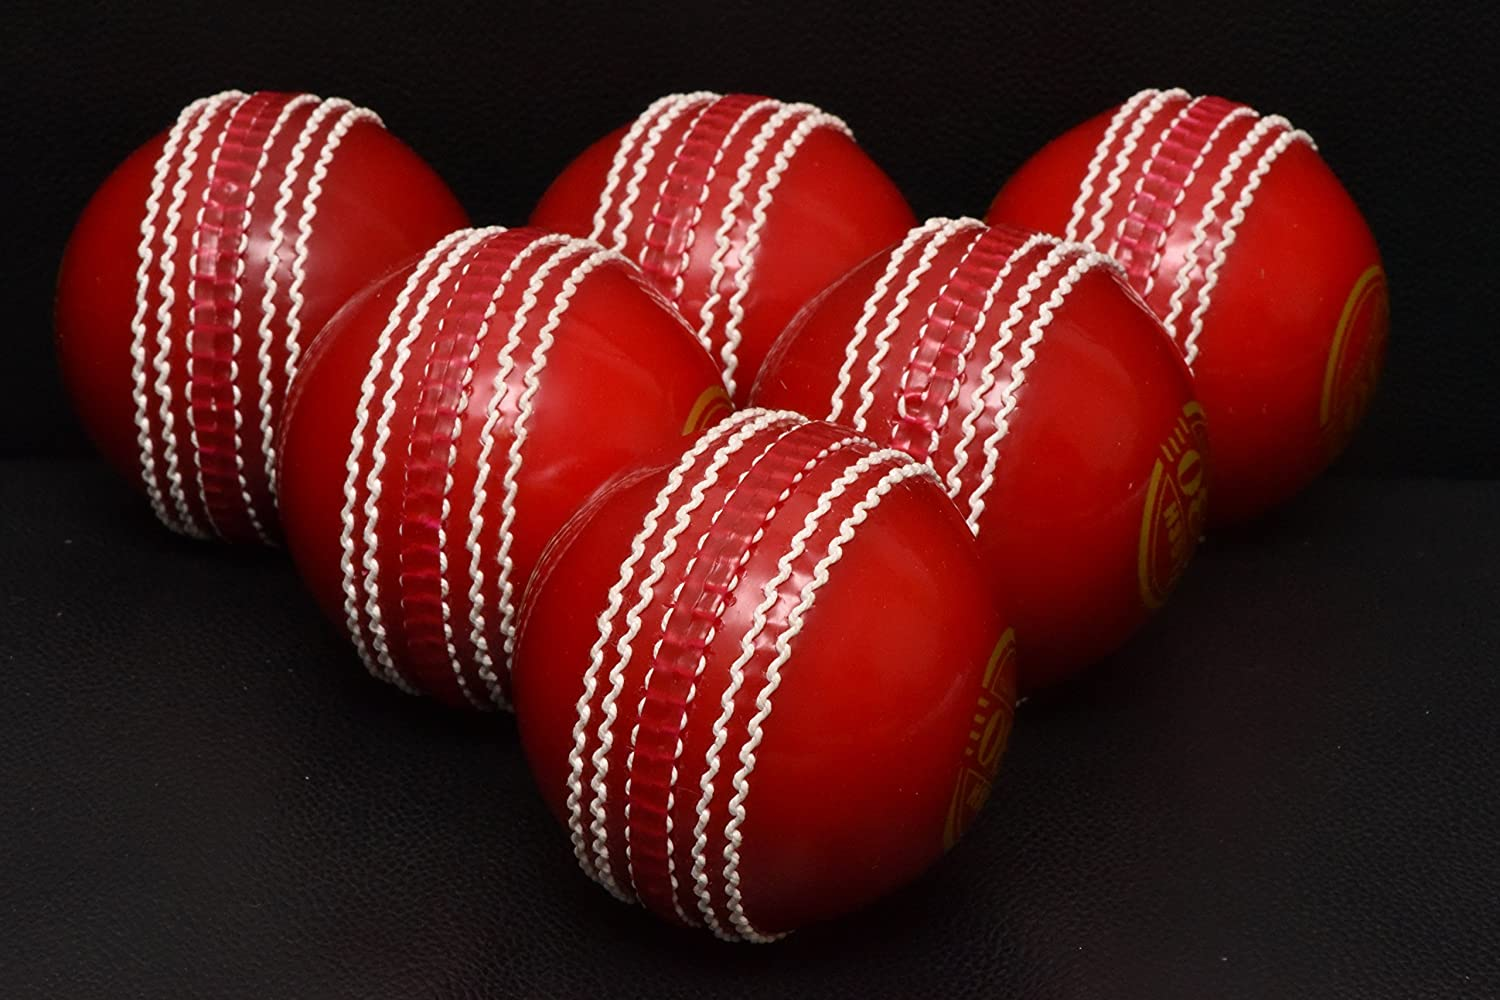 Pack de 6 balles de cricket As Incrediball - Balles de cricket excellentes pour l'entraînement Affordable spots